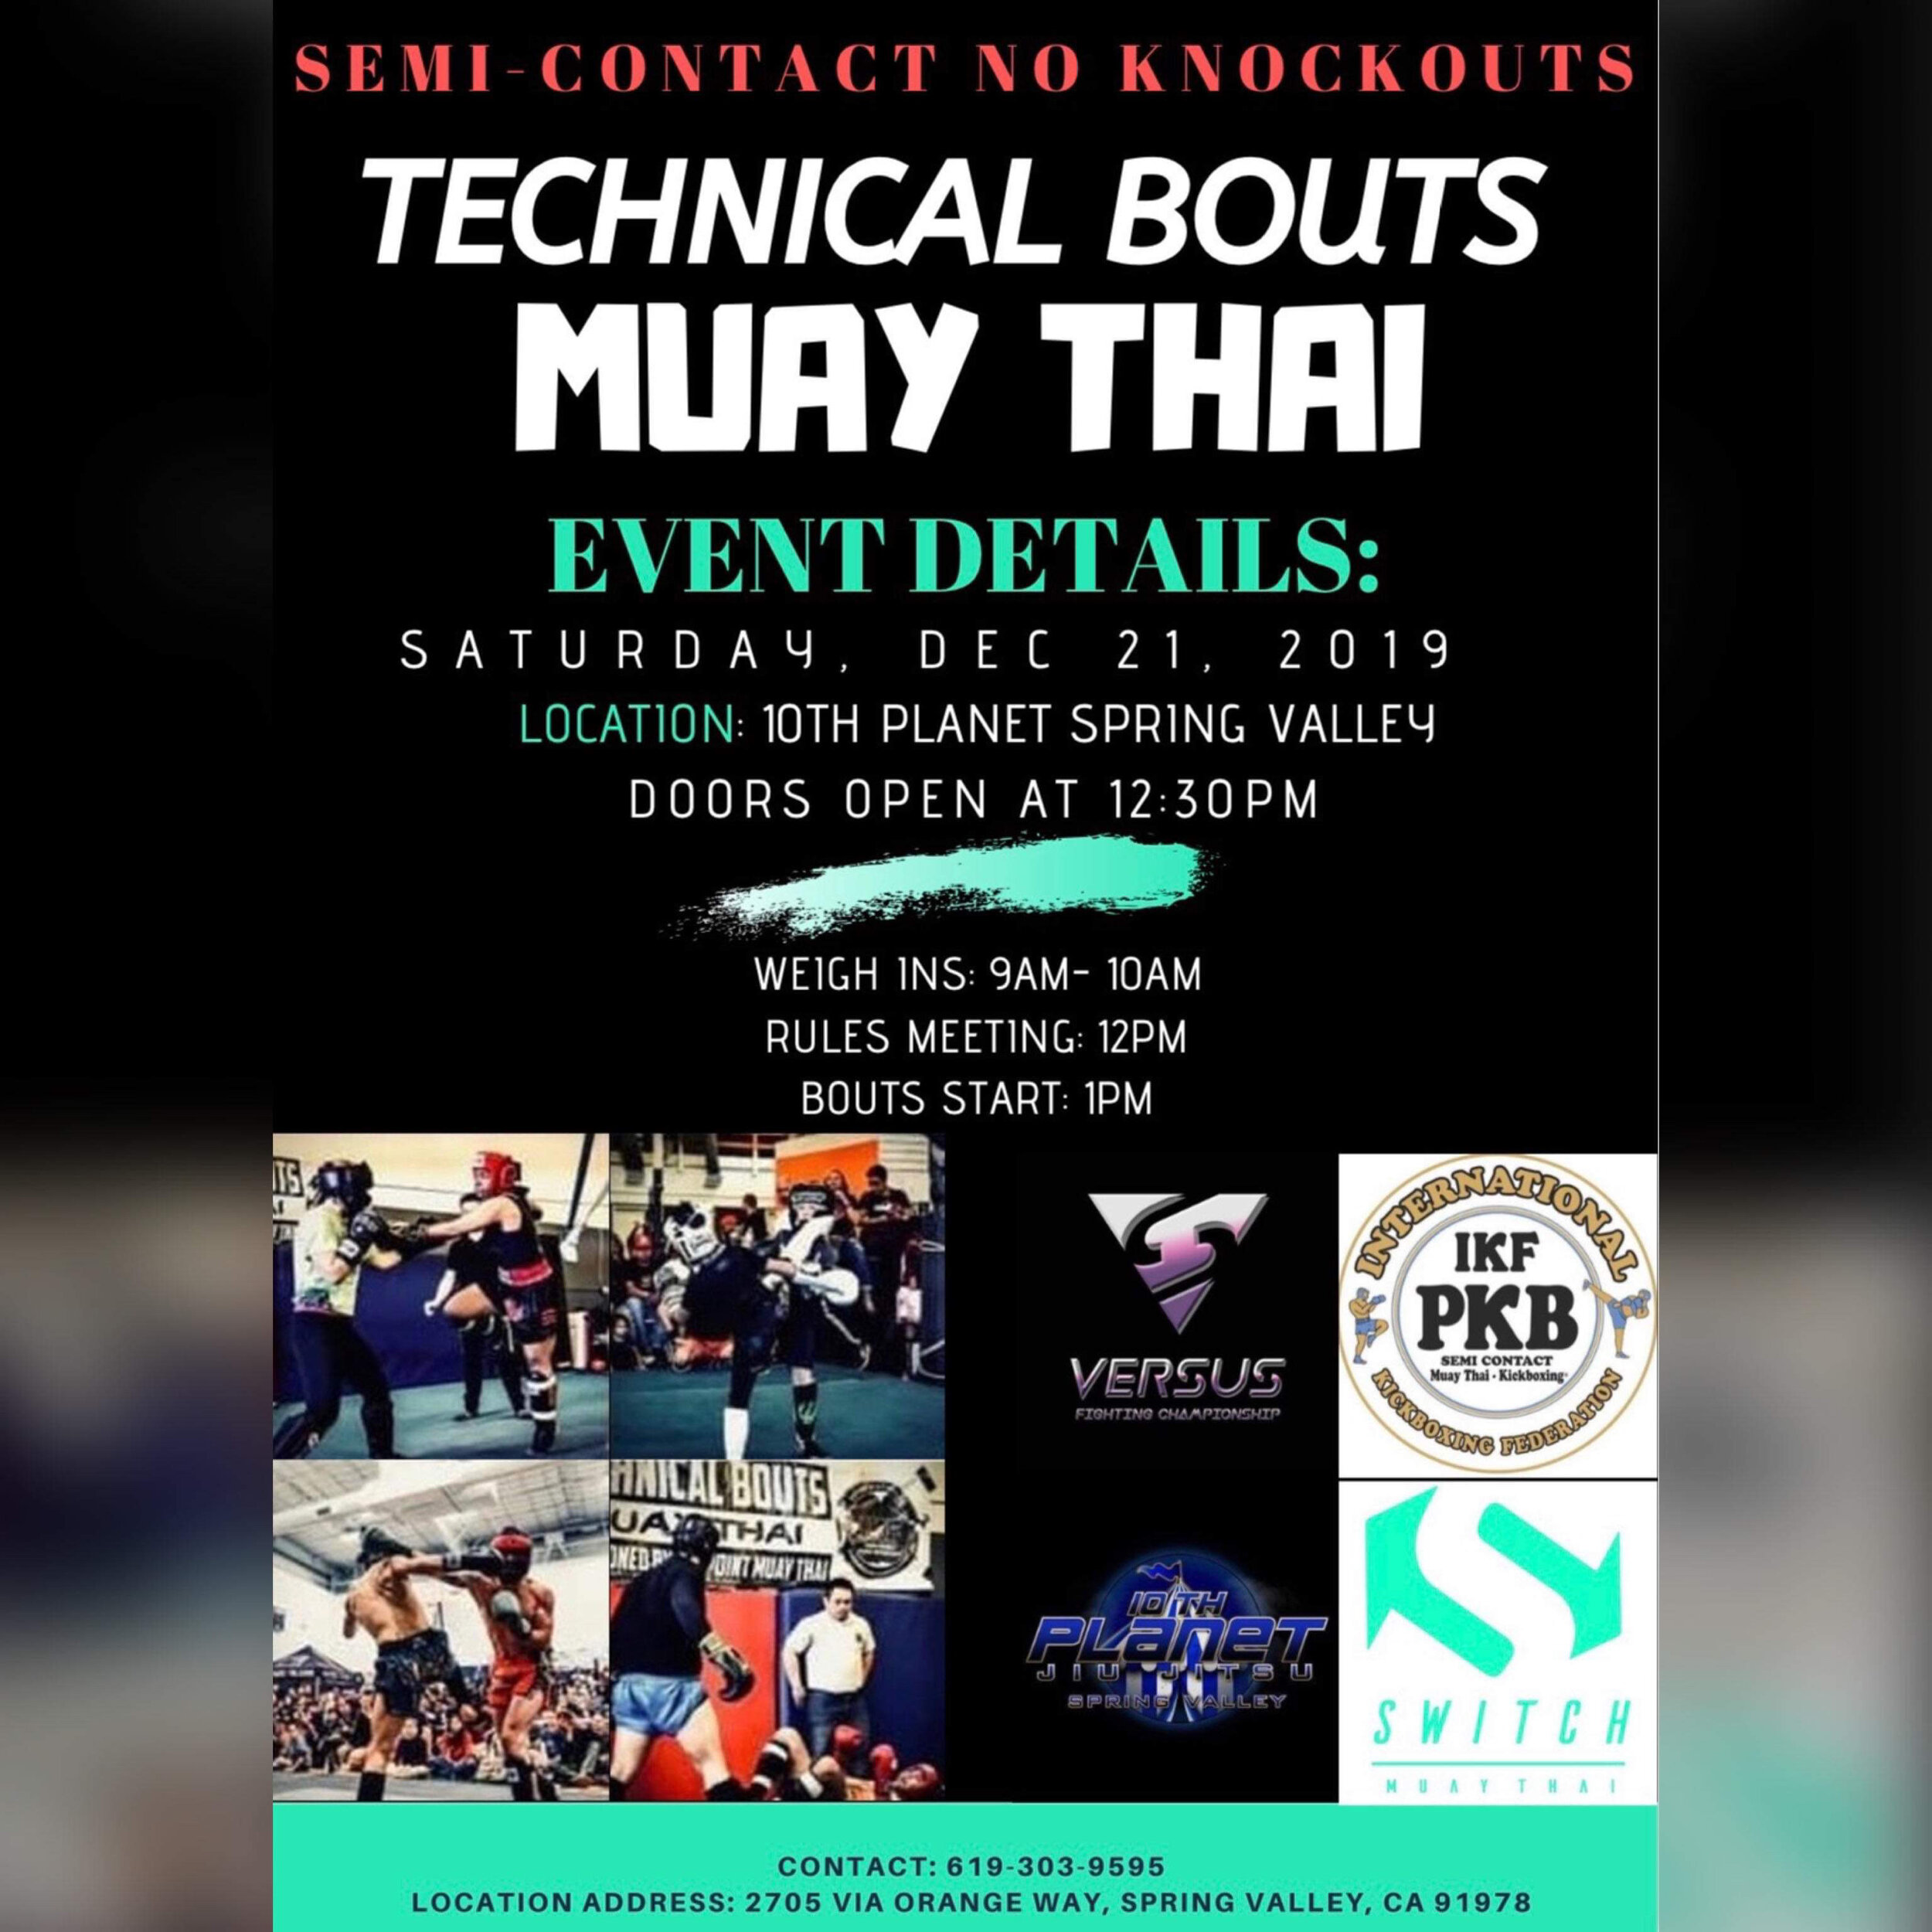 Muay Thai Technical Bouts